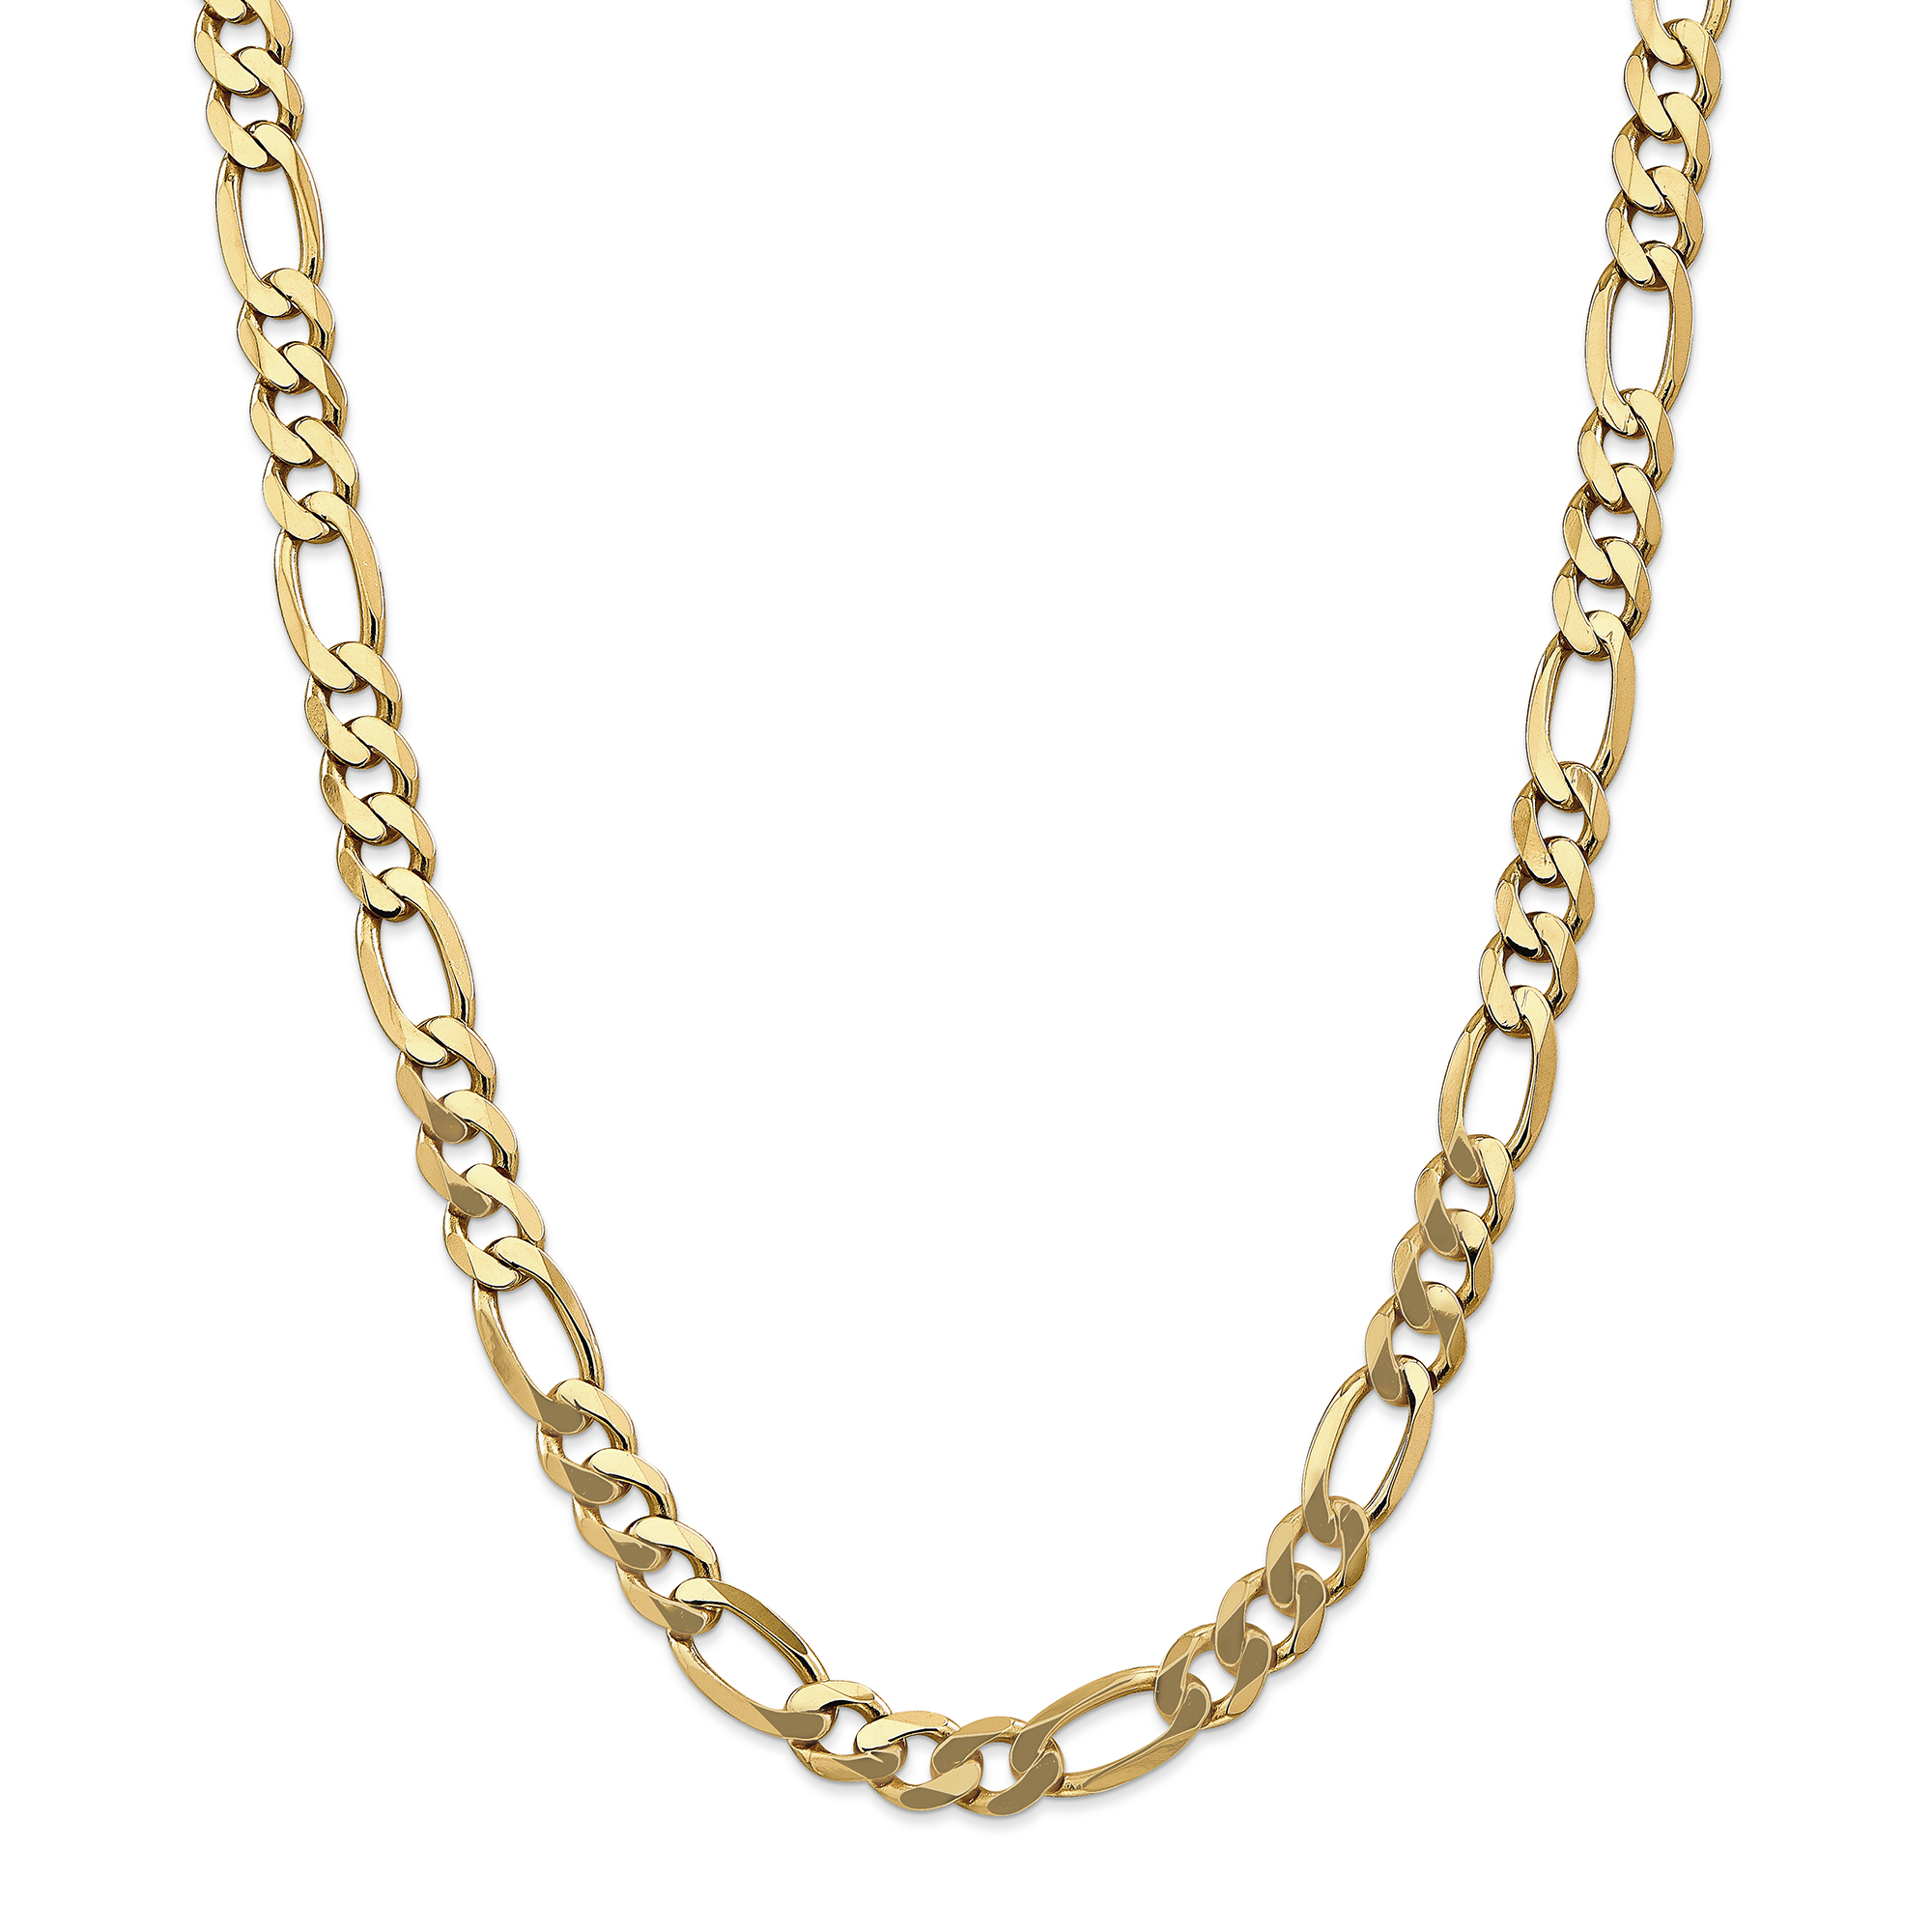 ICE CARATS 14kt Yellow Gold 8.75mm Flat Link Figaro Chain Necklace 20 Inch Pendant Charm Fine Jewelry Ideal Gifts For... by IceCarats Designer Jewelry Gift USA